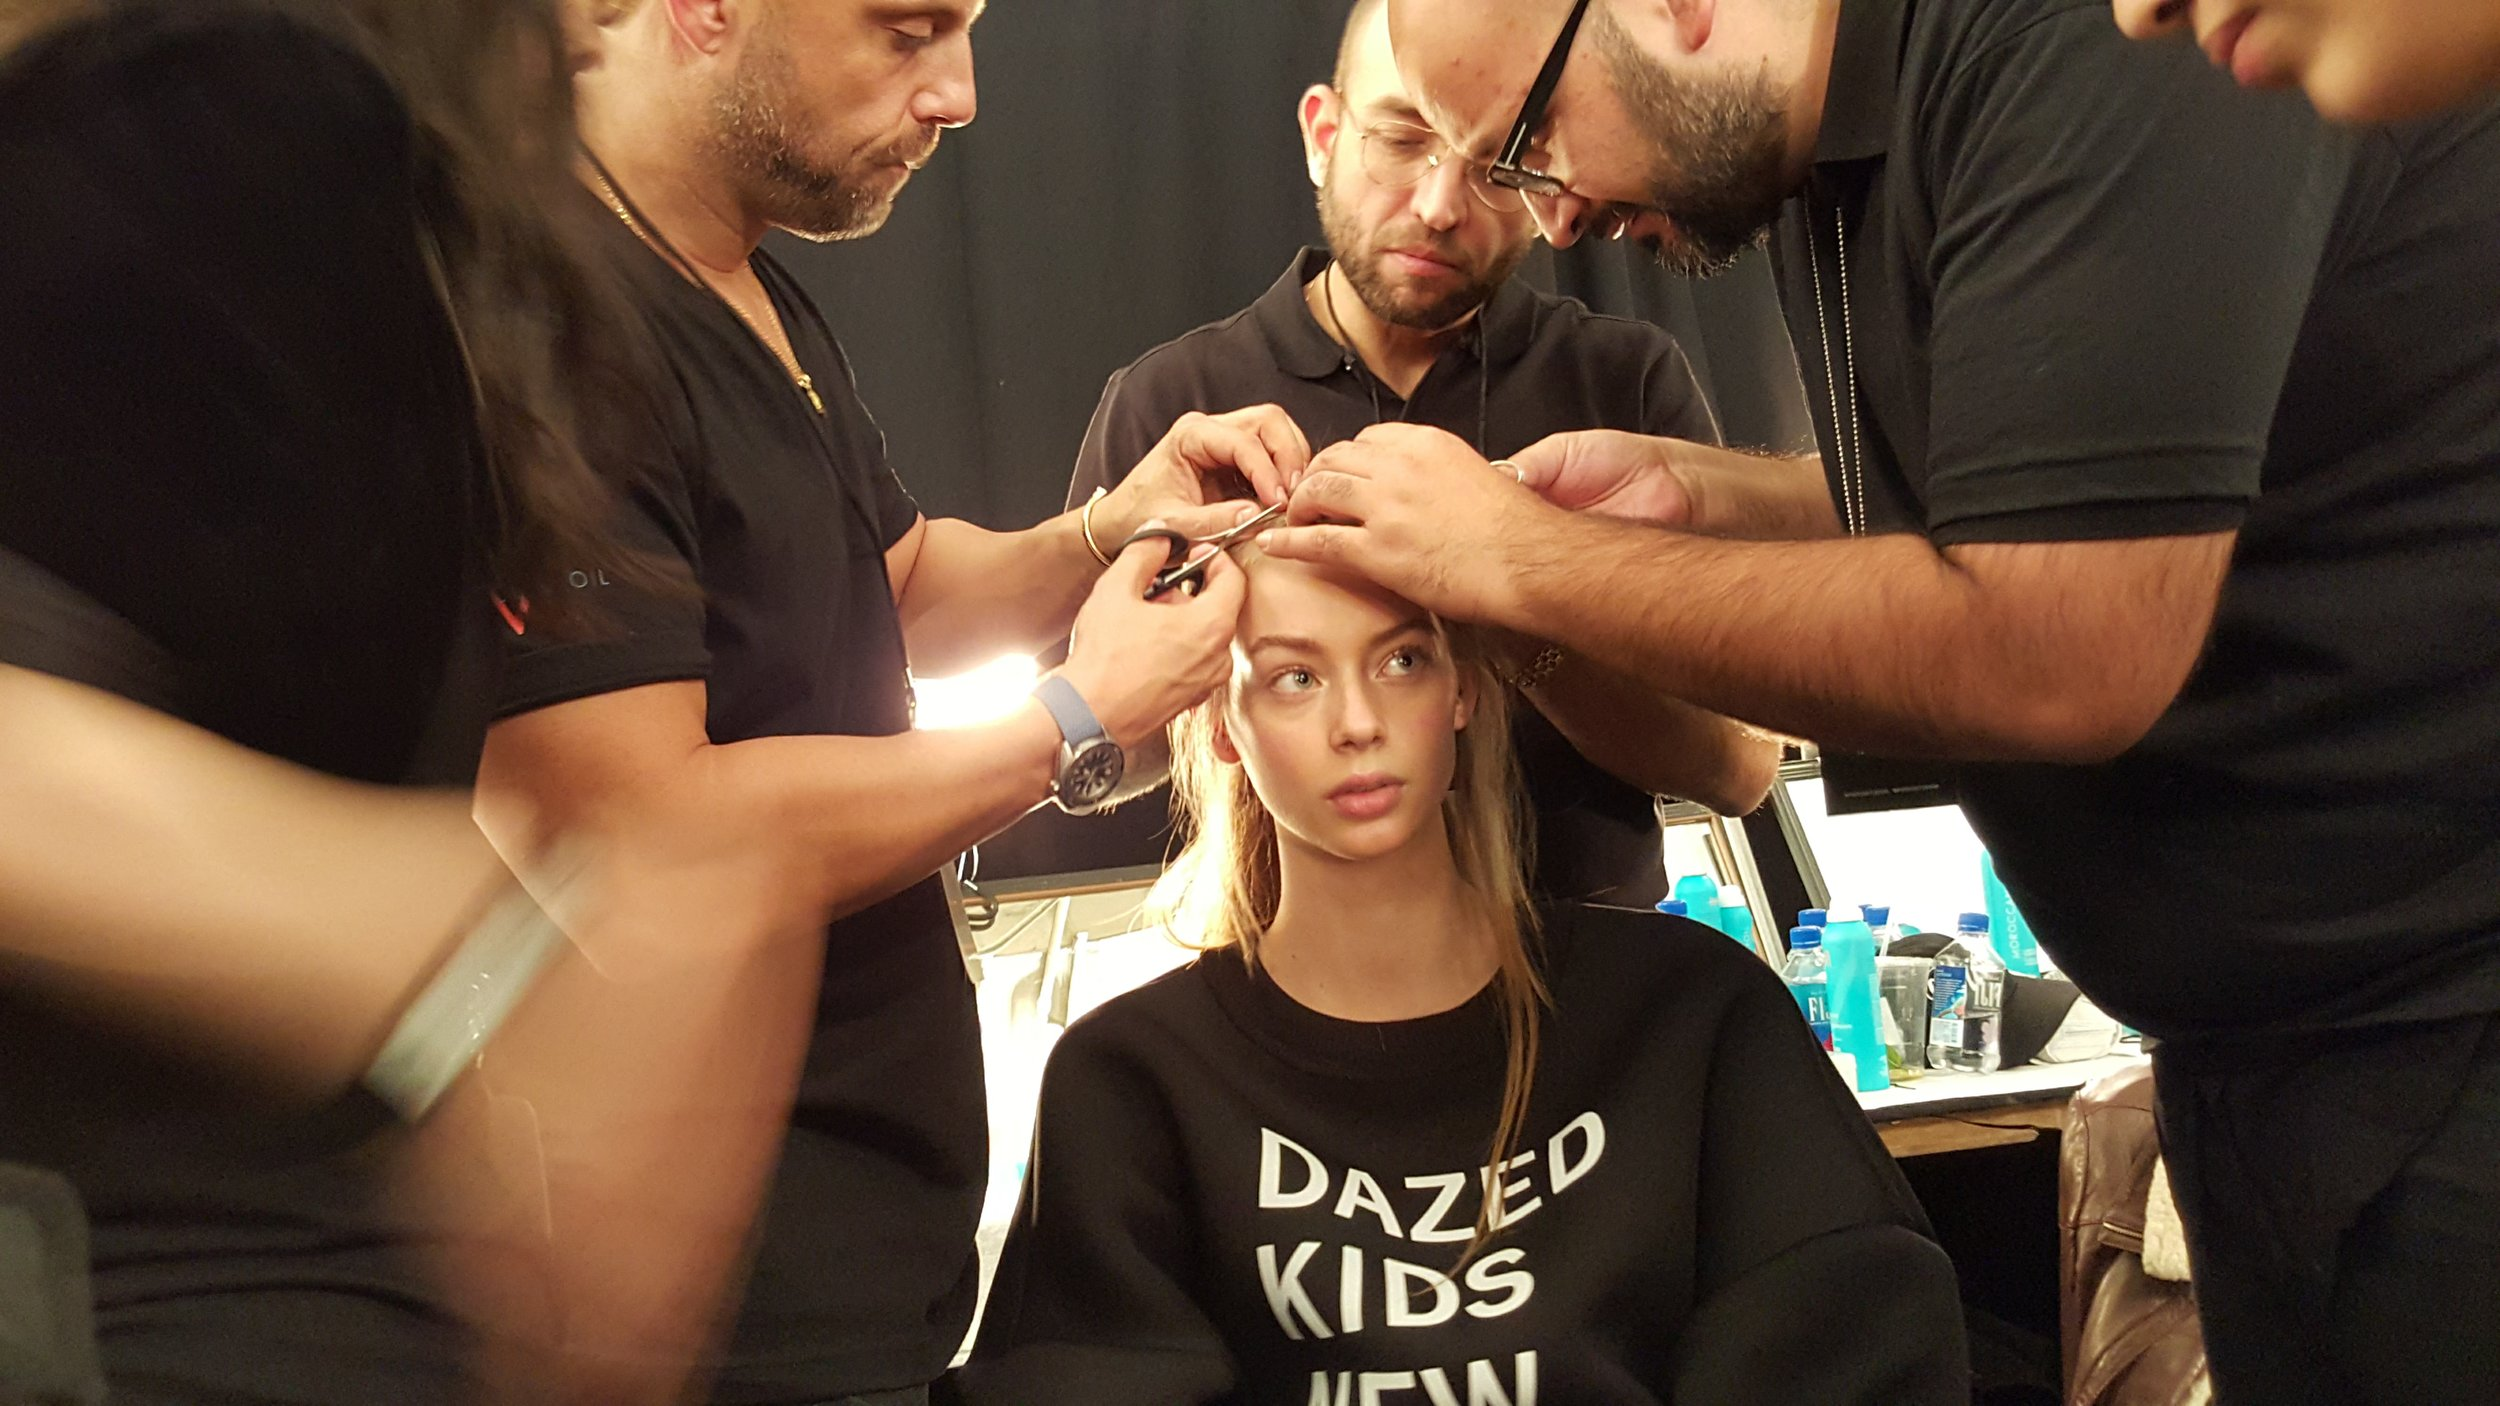 This model arrived to the show with a type of dreadlocked 'do, which the Moroccan Oil team was scrambling to remove, in able to create the soft hairstyle for this show.